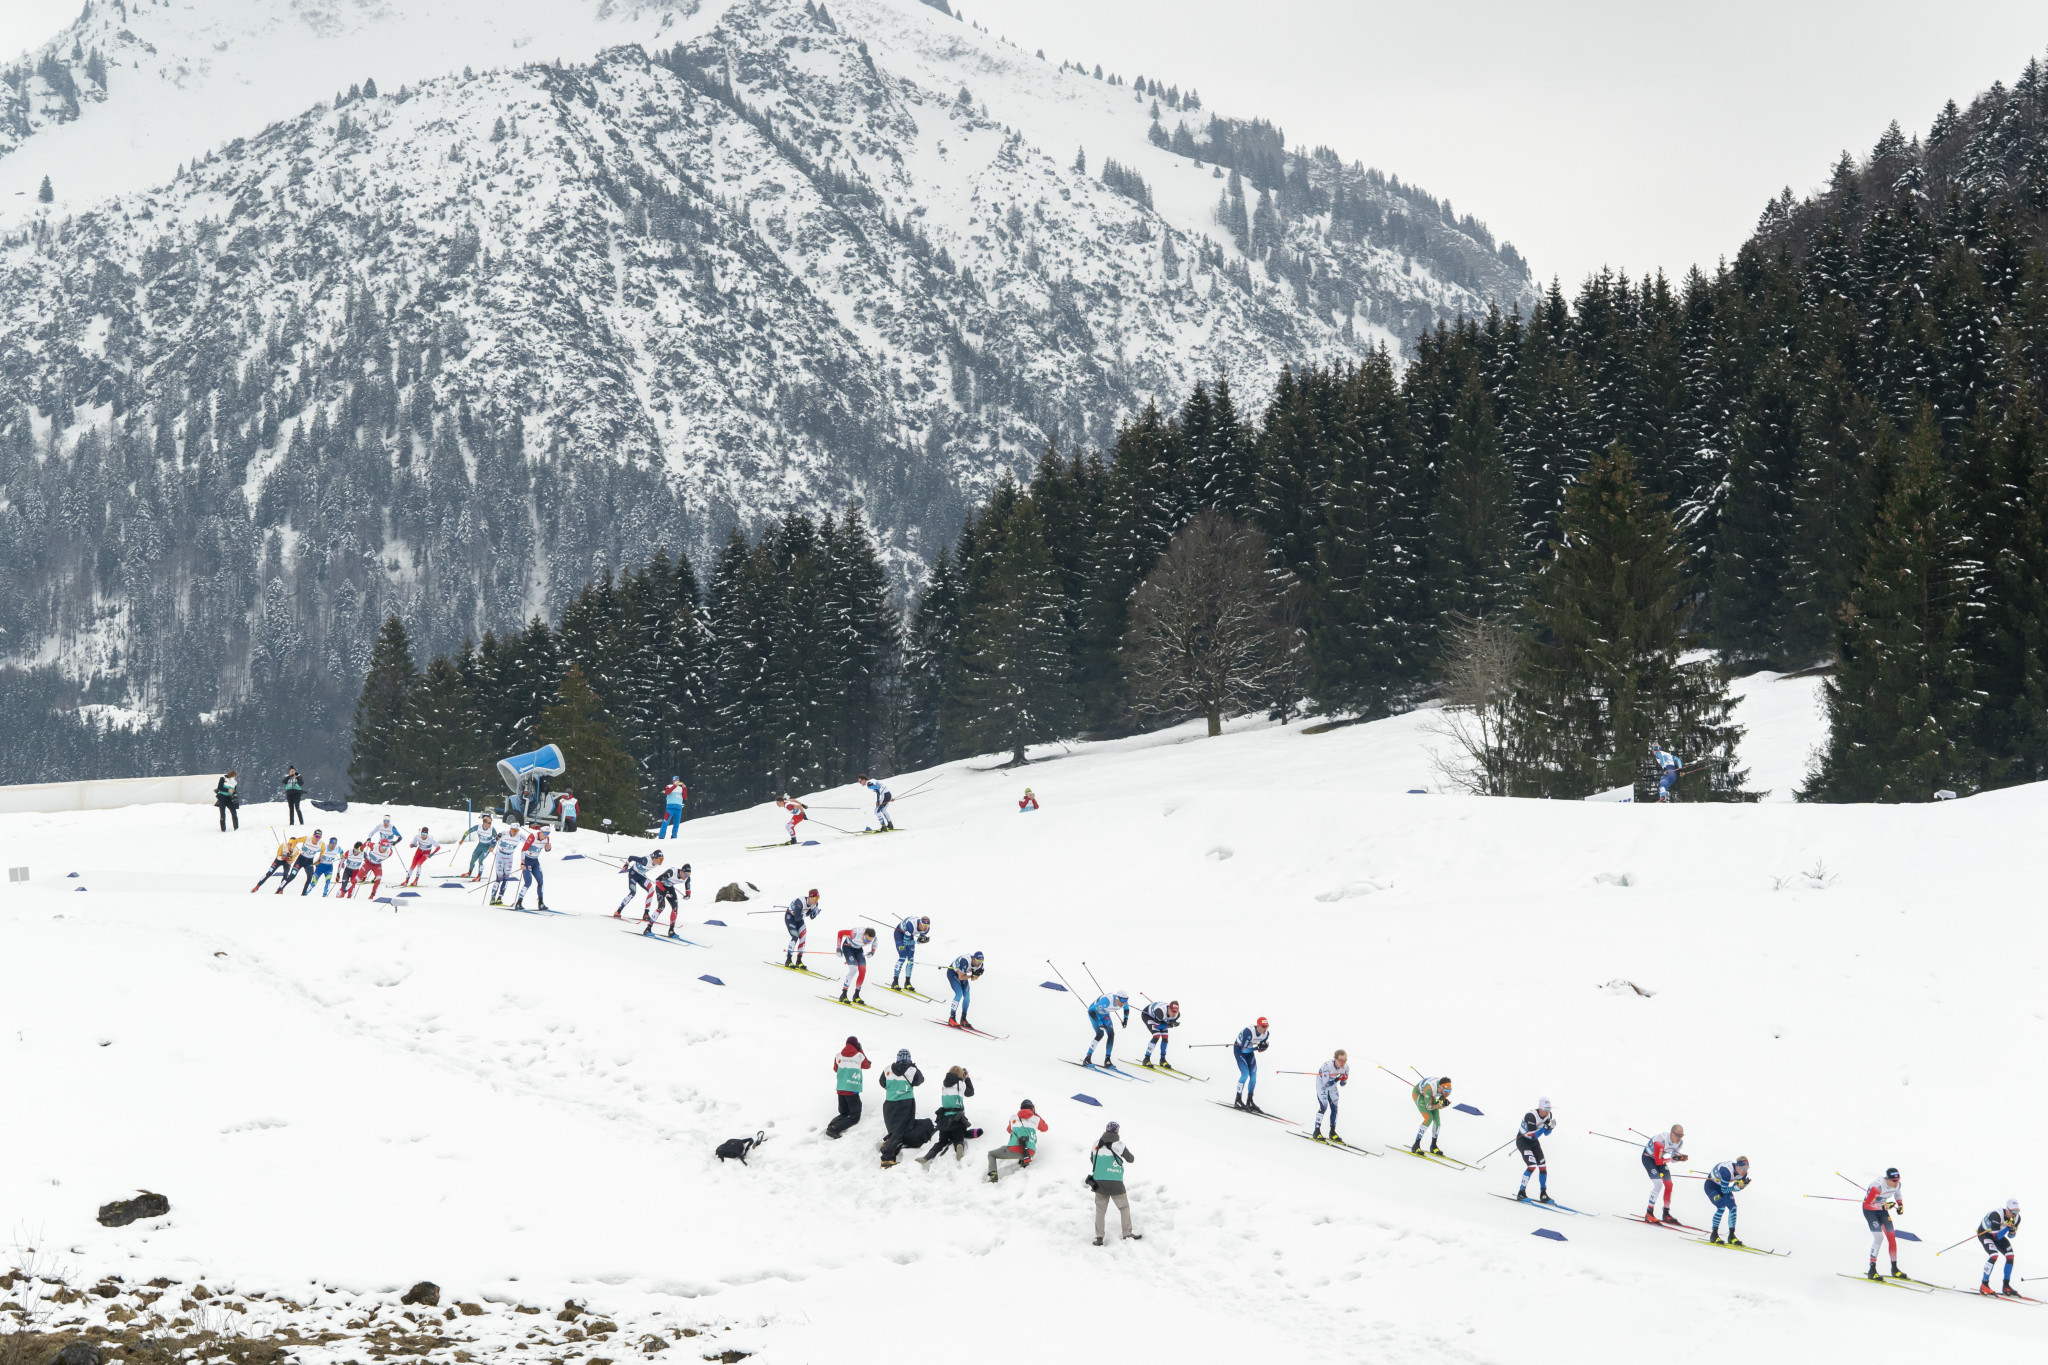 Uri hopes for tourism boost from staging Lucerne 2021 cross-country skiing contests